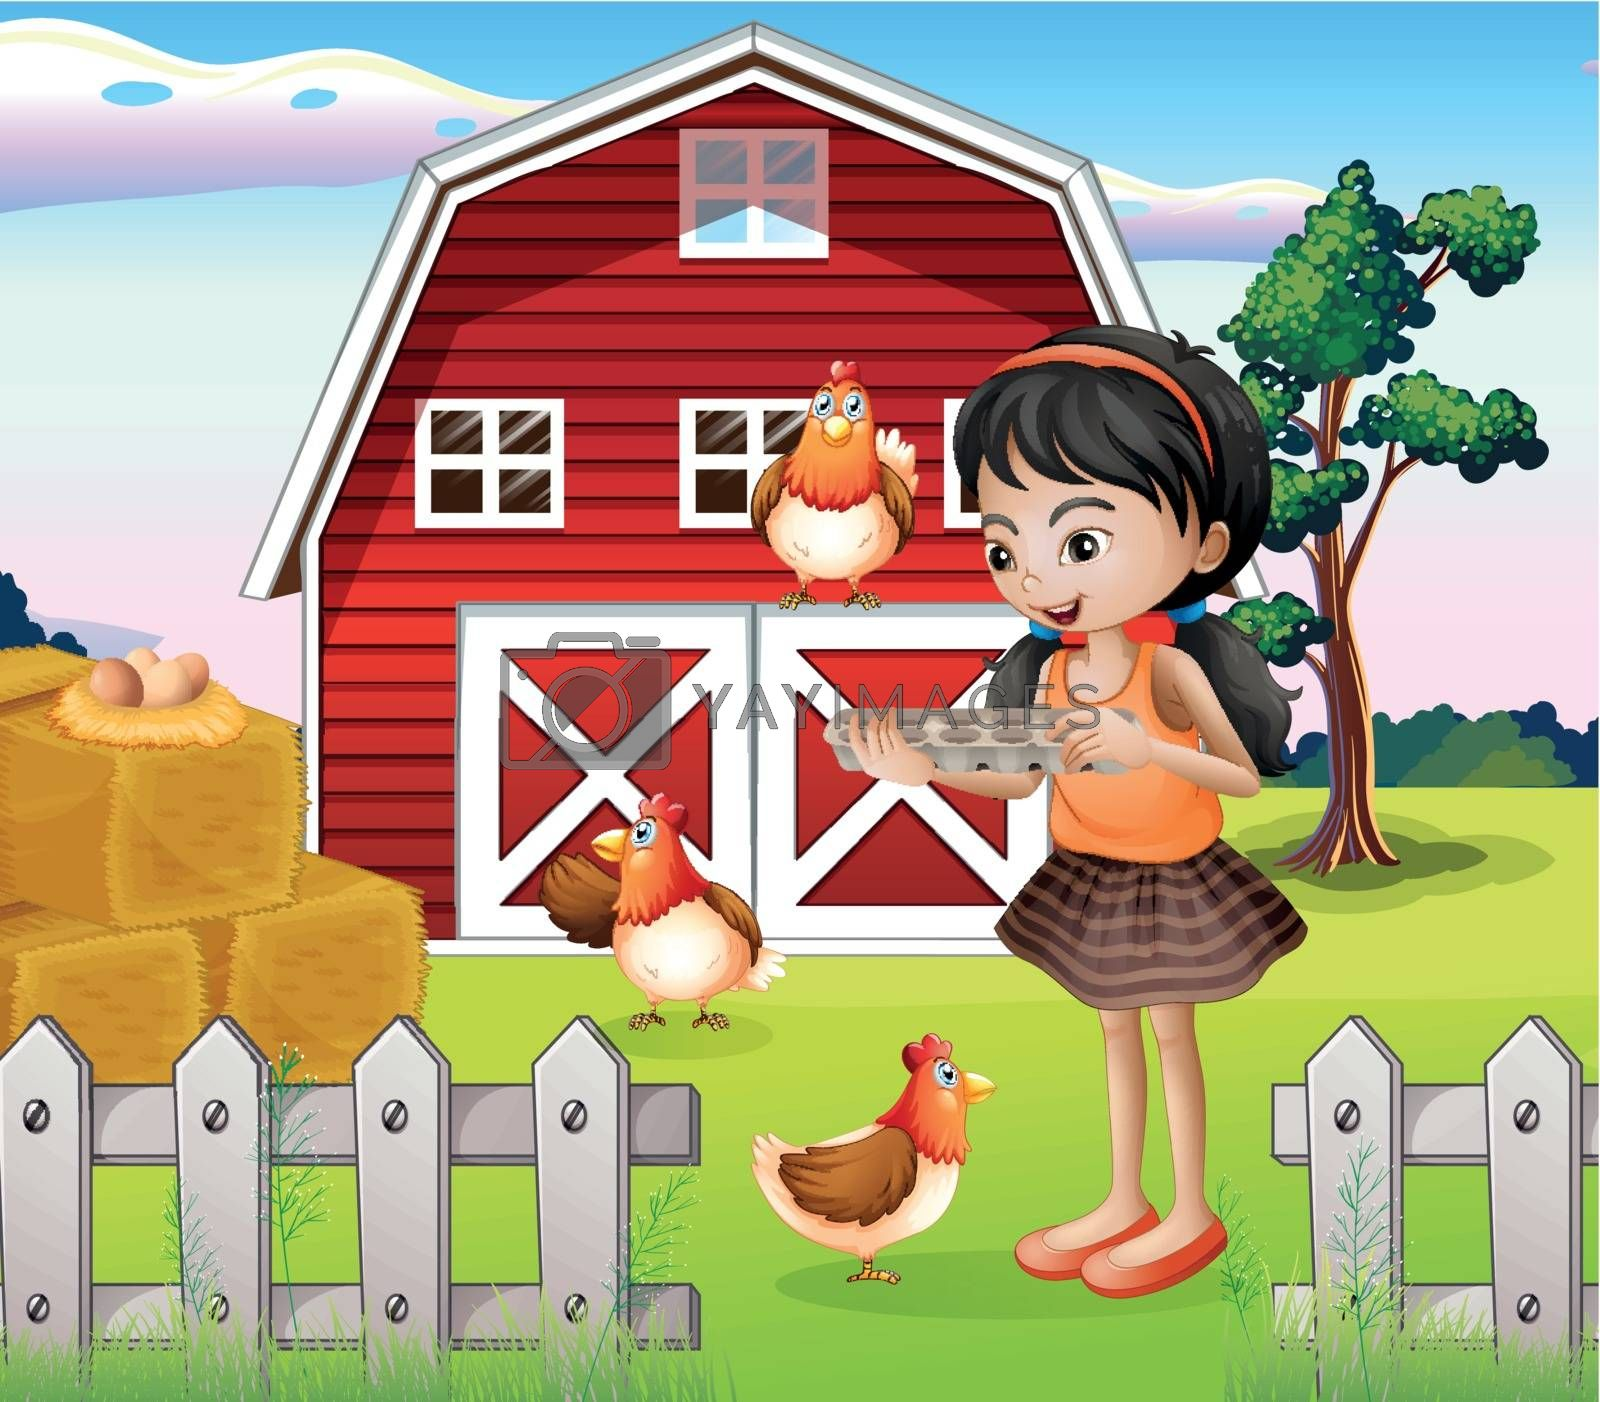 Illustration of a girl with their farm animals